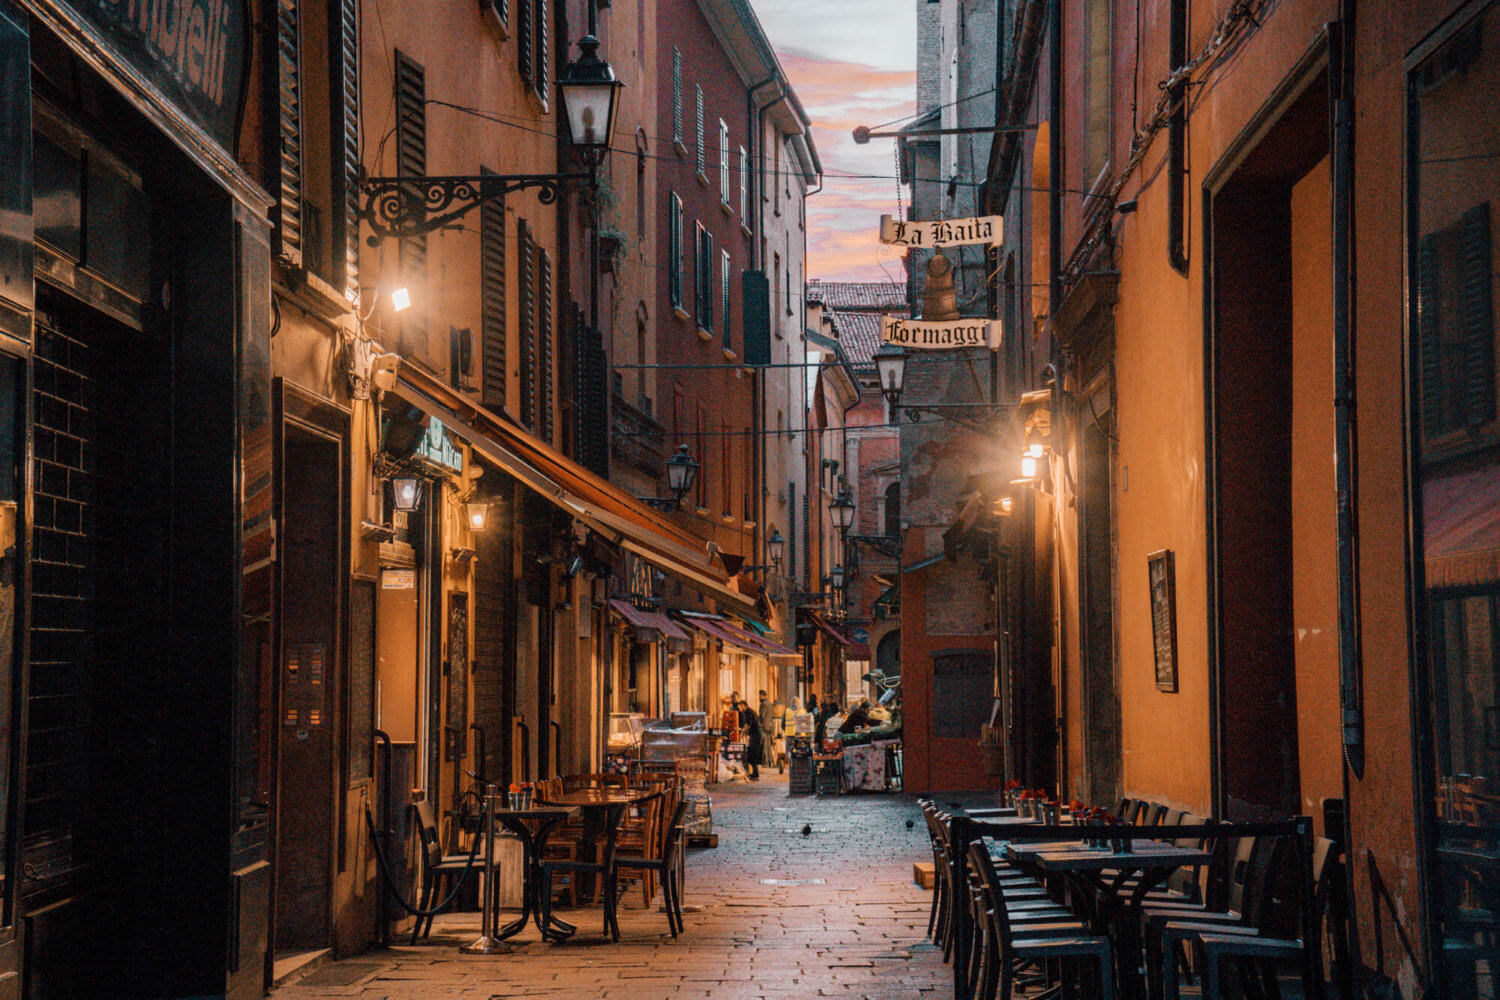 Bologna, Italy in the early morning